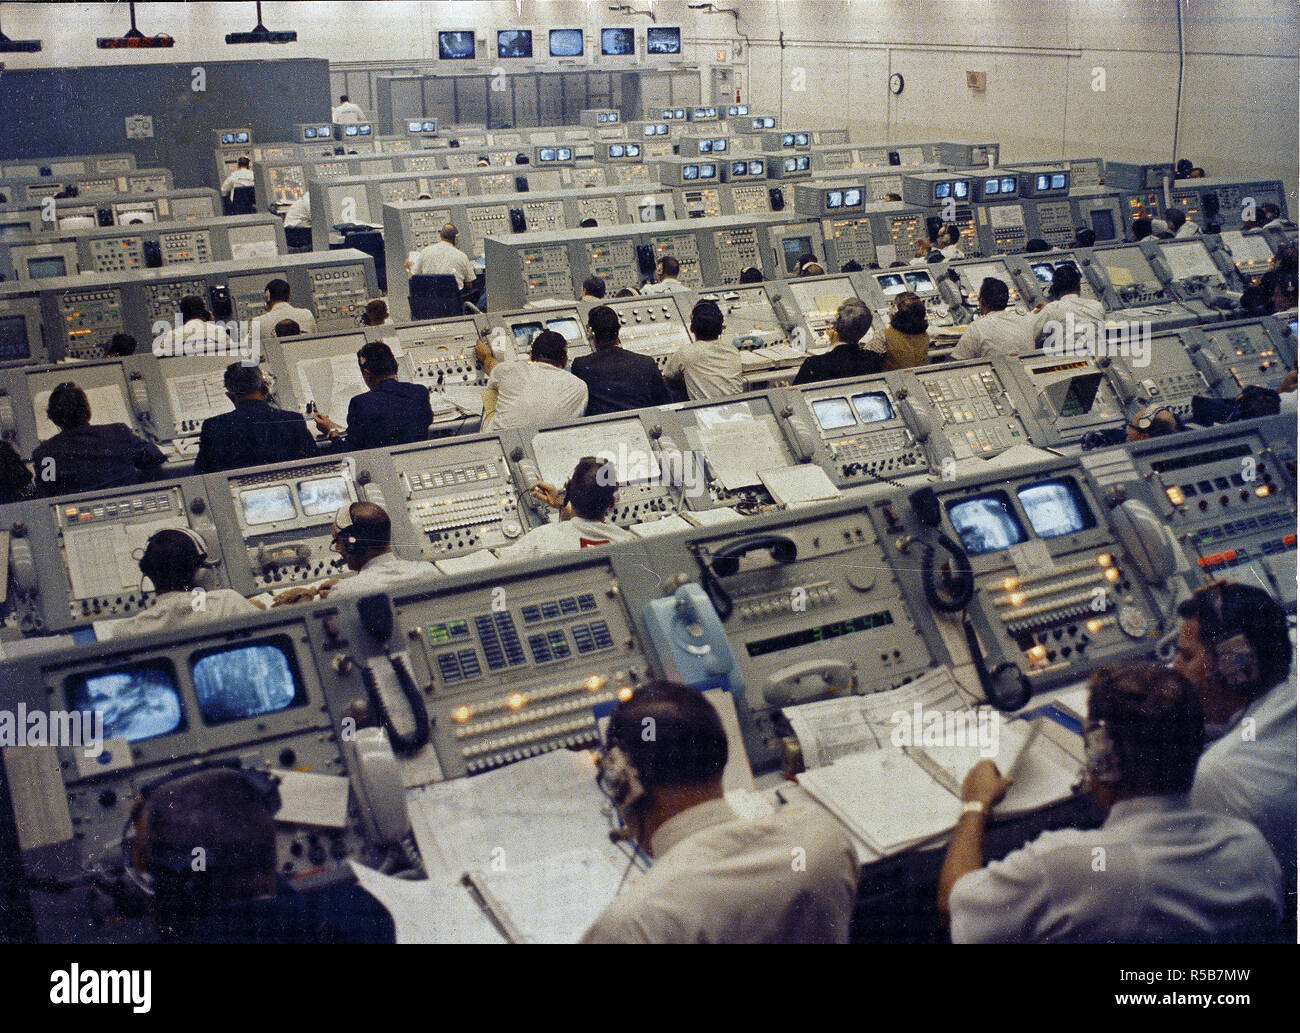 This photograph depicts a busy Launch Control Center at Kennedy Space Center during the Apollo 8 mission launch activities. - Stock Image